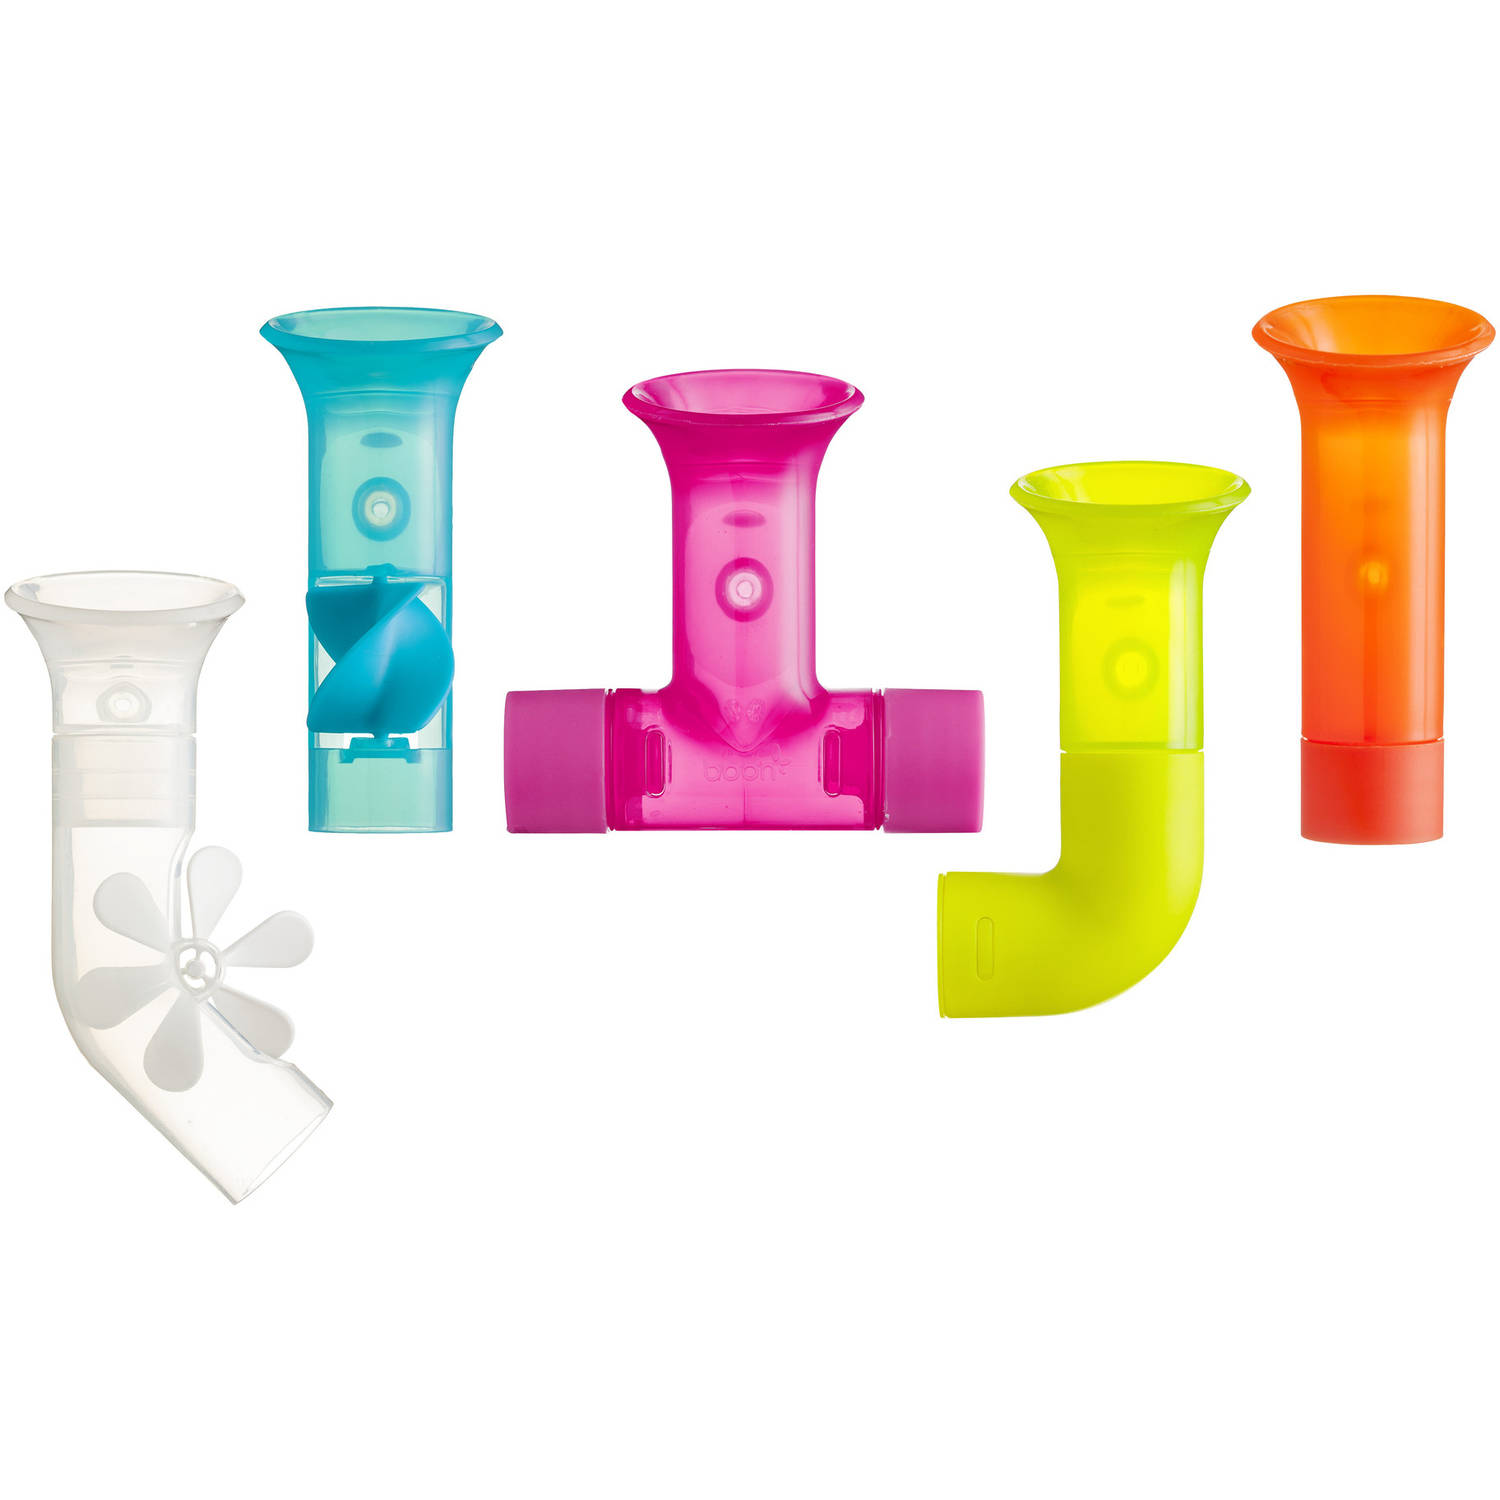 Boon Pipes Water Pipes Bath Toy